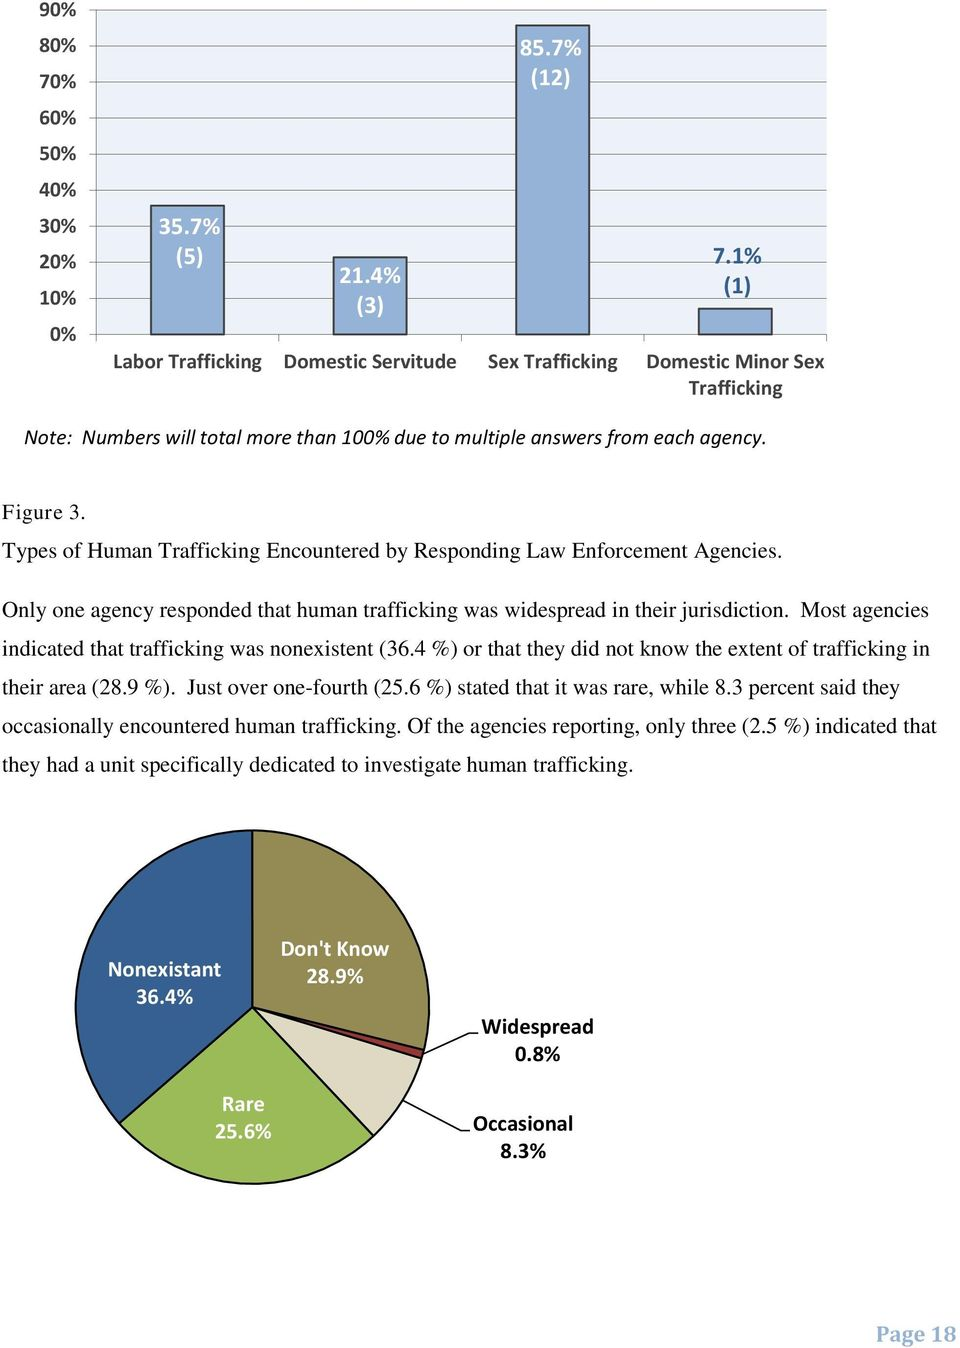 Types of Human Trafficking Encountered by Responding Law Enforcement Agencies. Only one agency responded that human trafficking was widespread in their jurisdiction.